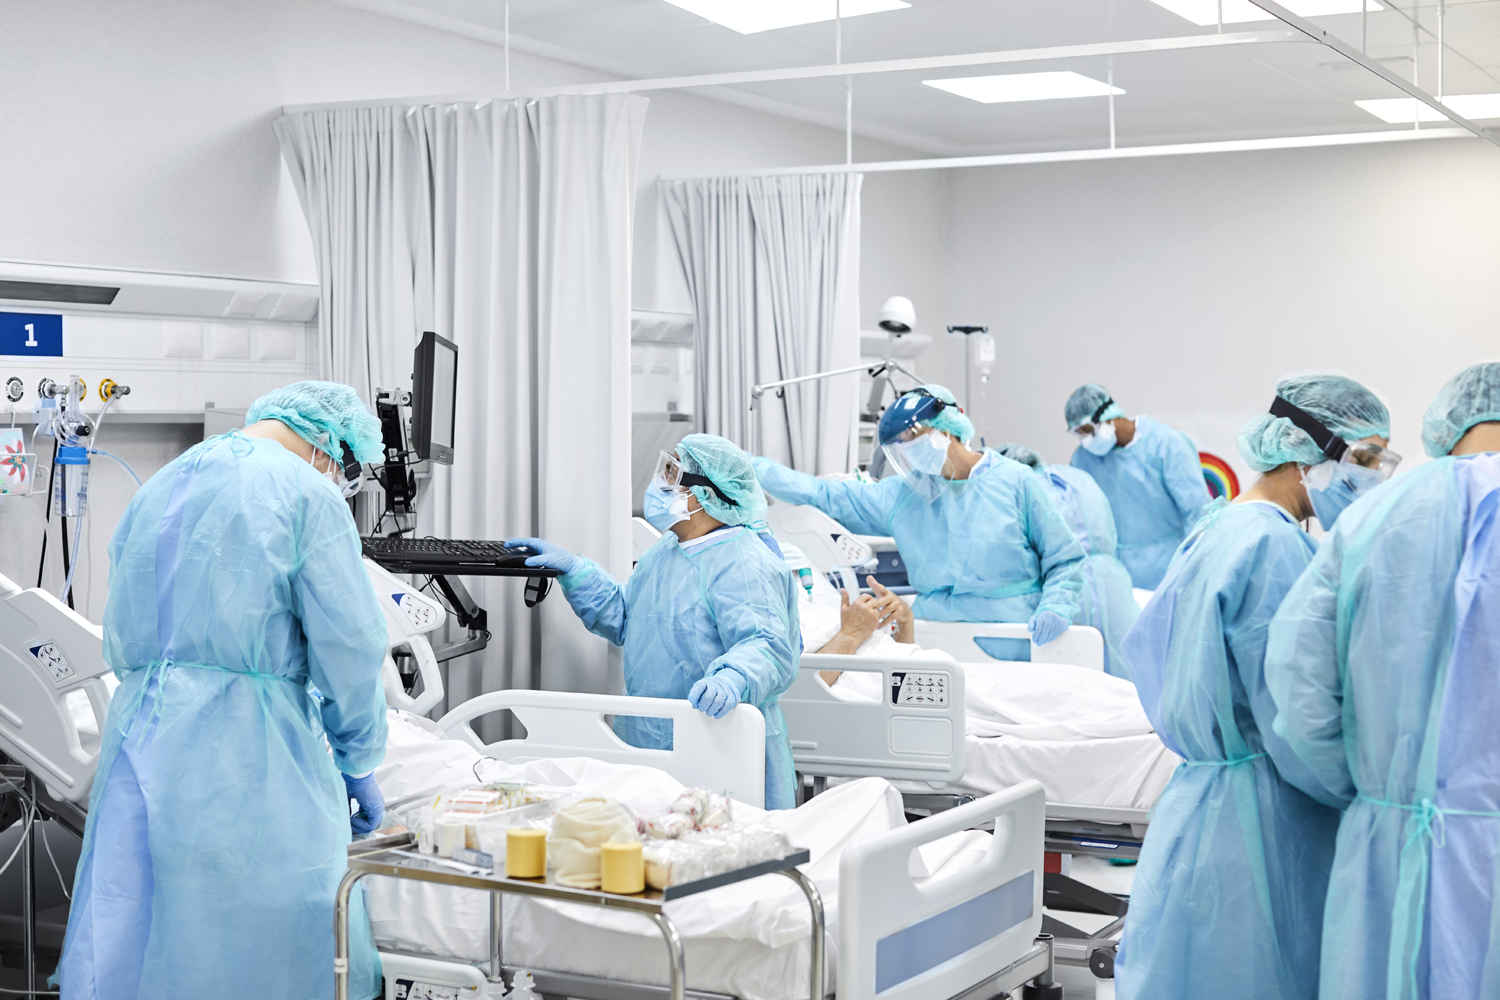 Healthcare Coworkers Working in ICU During COVID-19